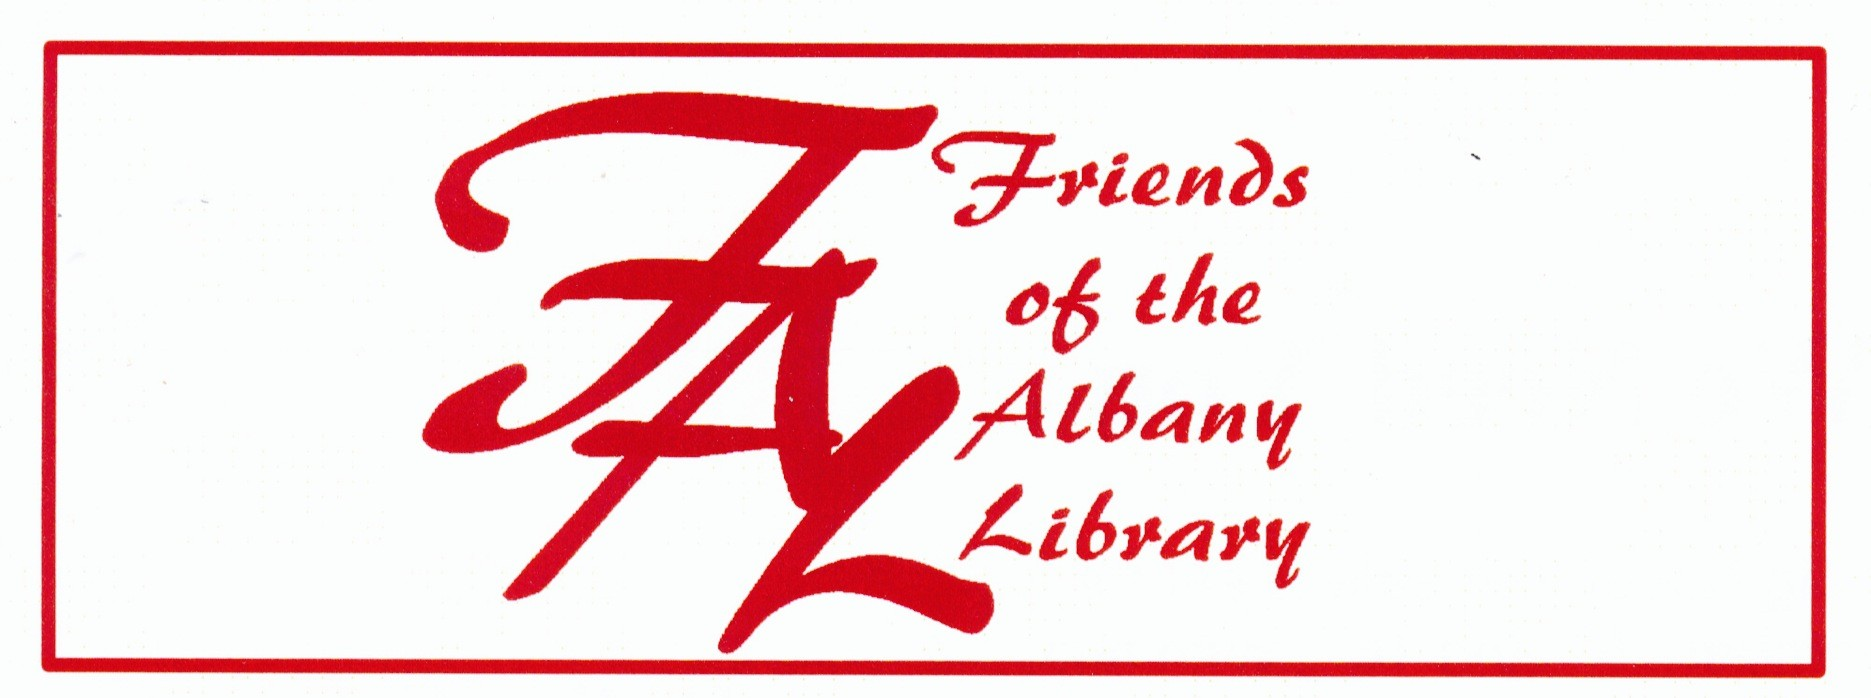 Friends of the Albany Library Meeting